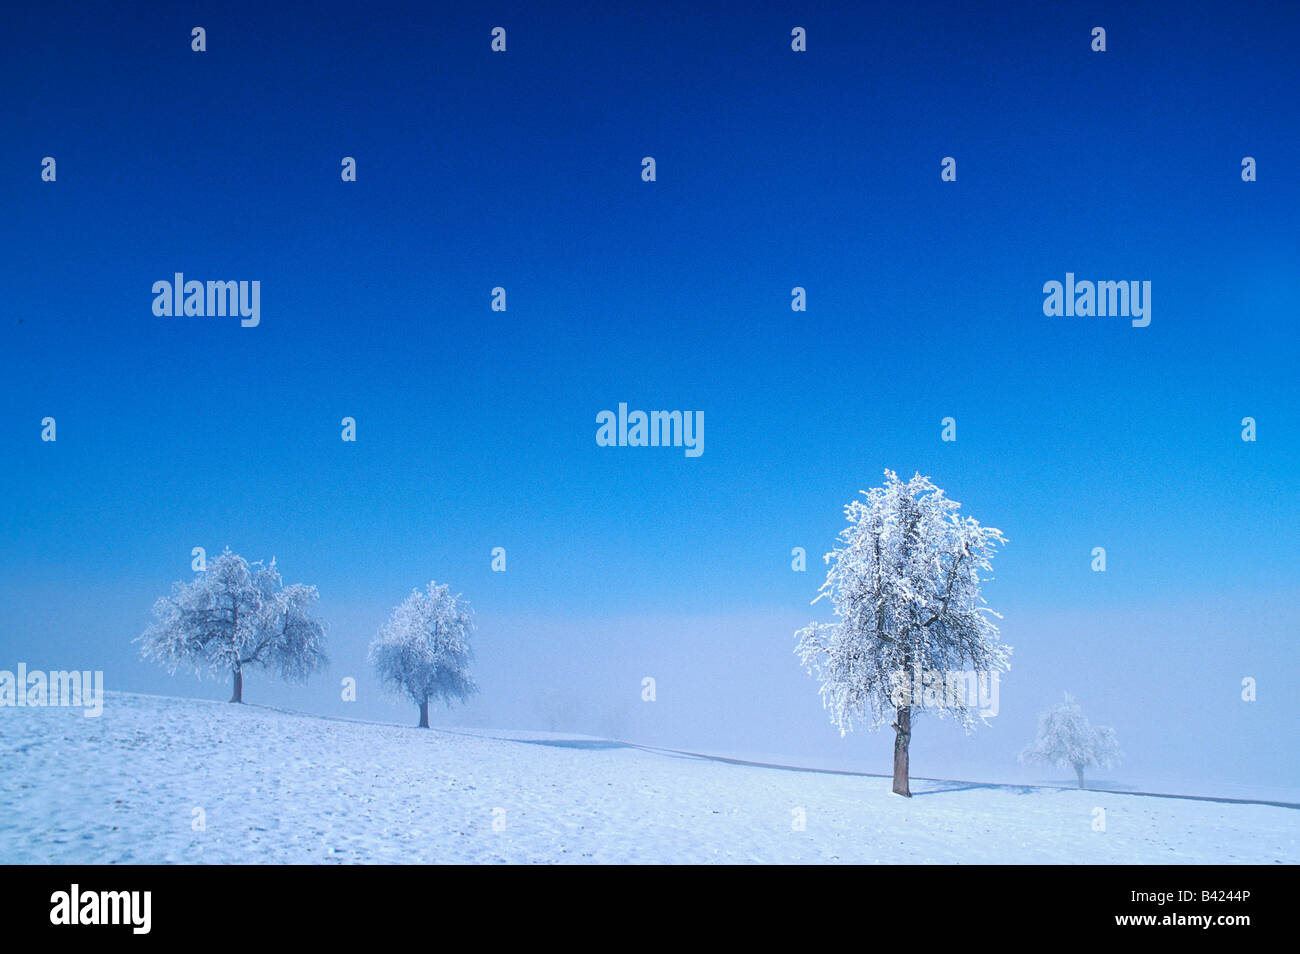 Bare trees with frost in winter Switzerland - Stock Image